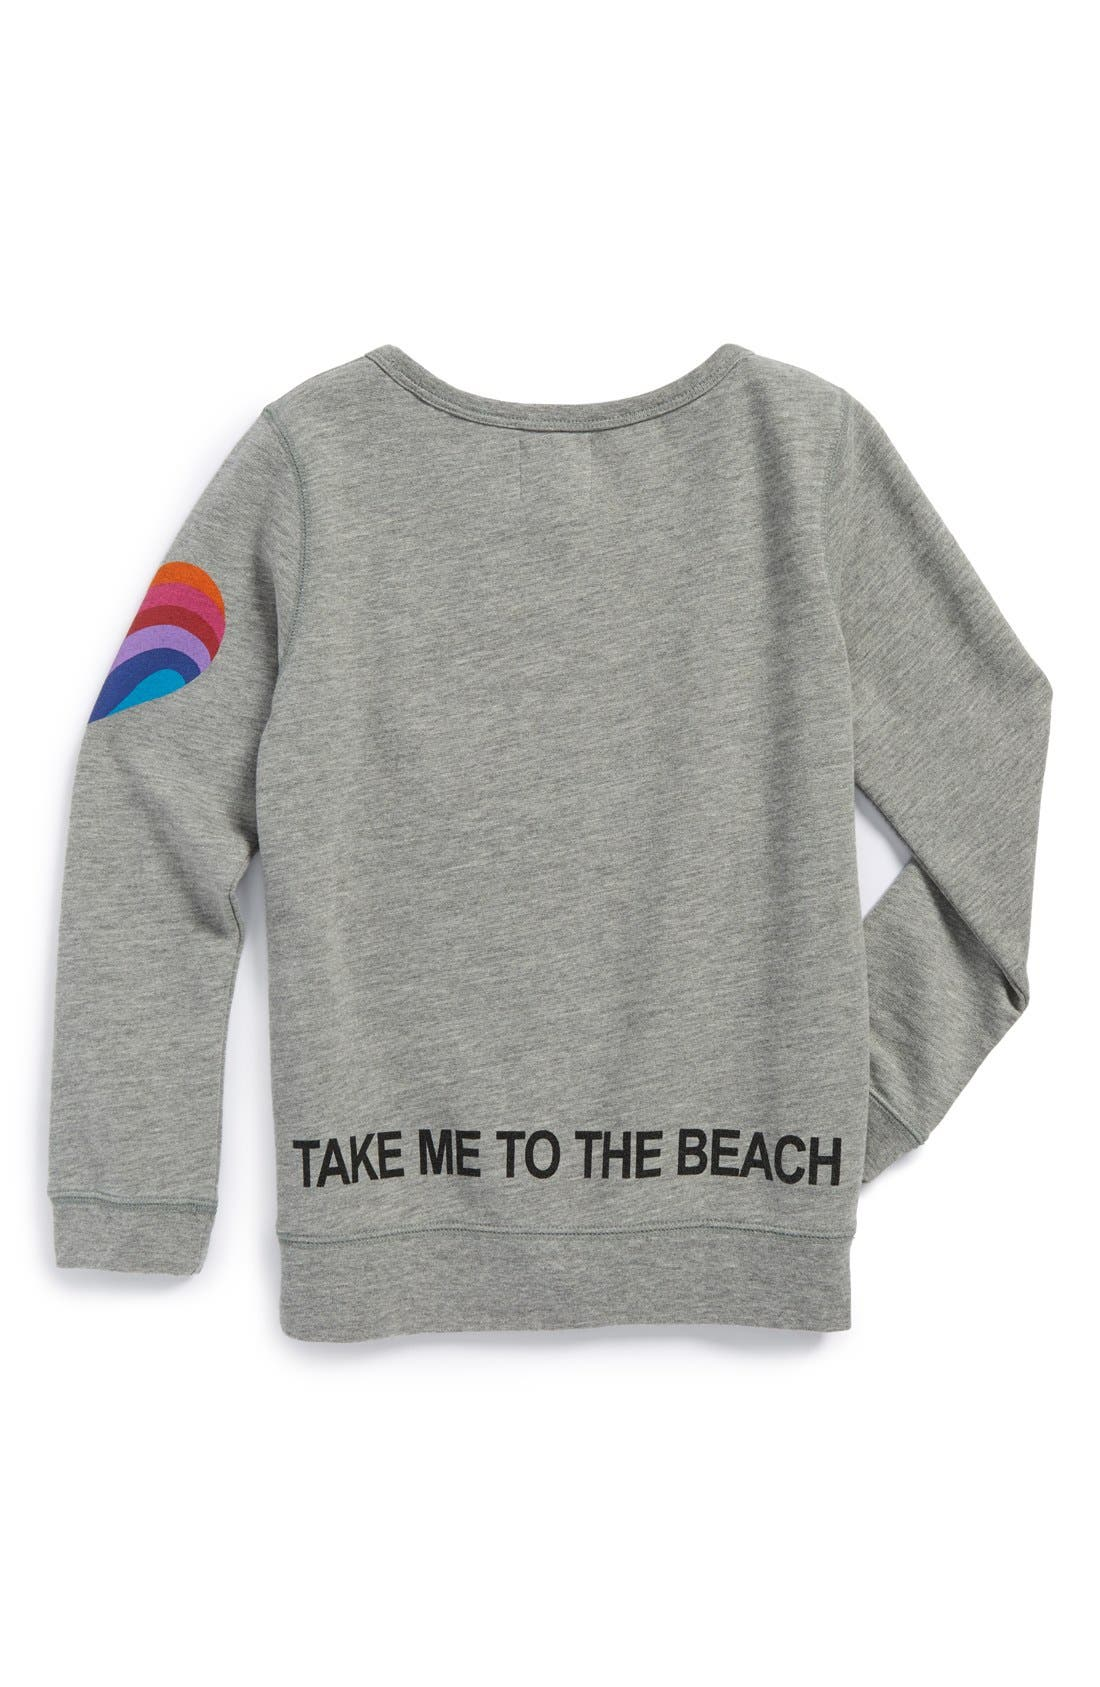 Alternate Image 2  - Peek 'Summer Please' Graphic Sweatshirt (Toddler Girls, Little Girls & Big Girls)